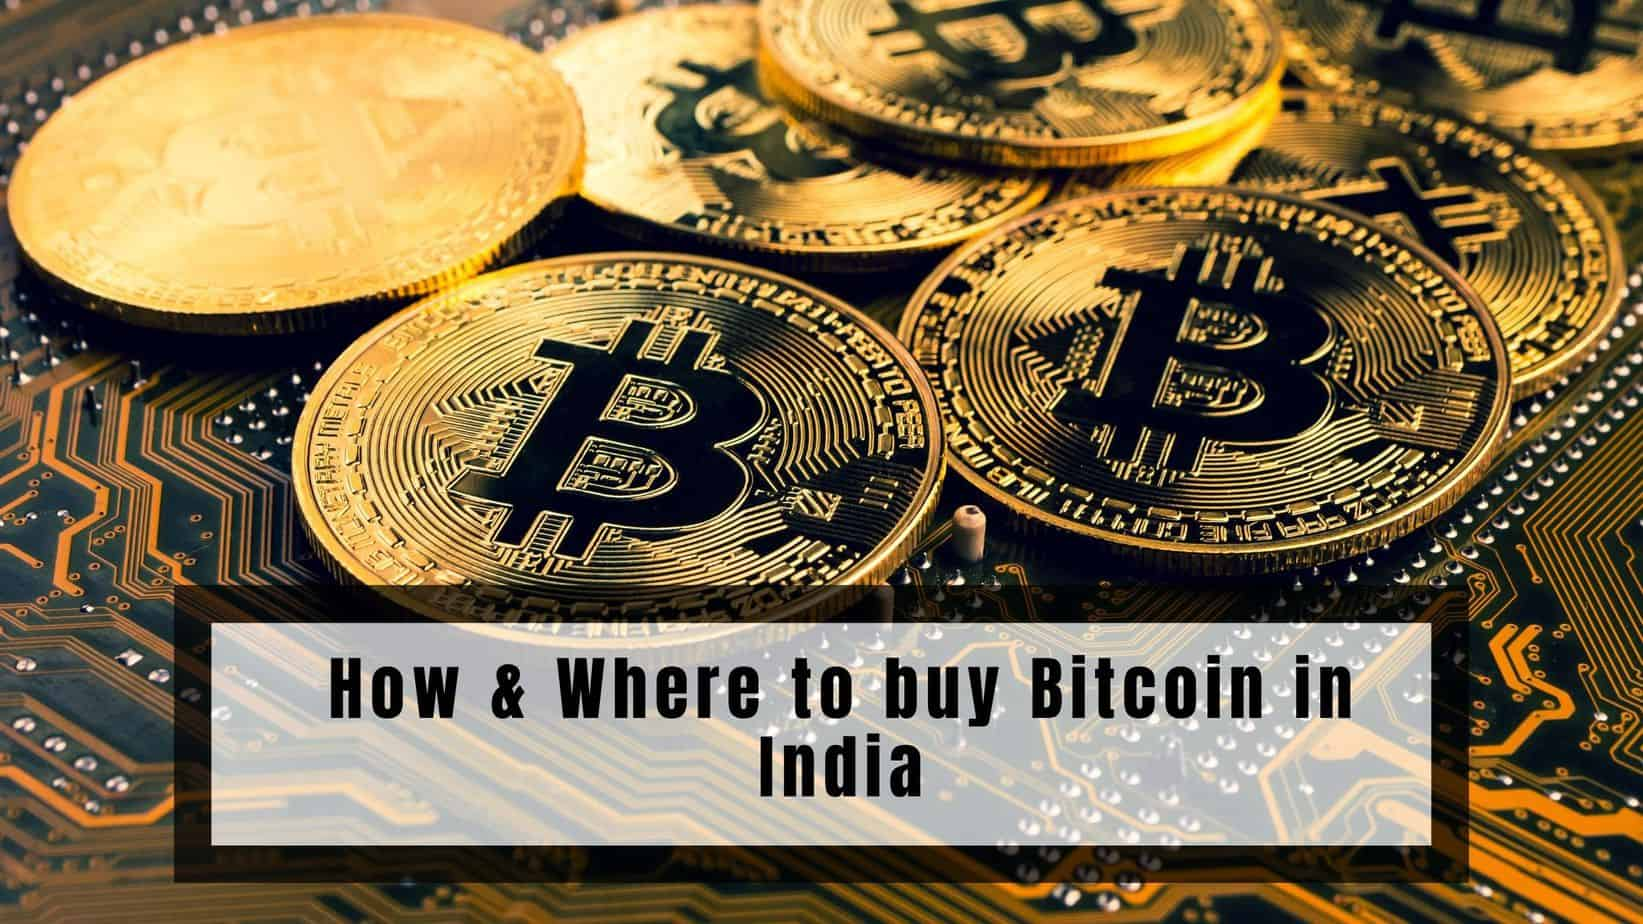 How & Where to buy Bitcoin in India